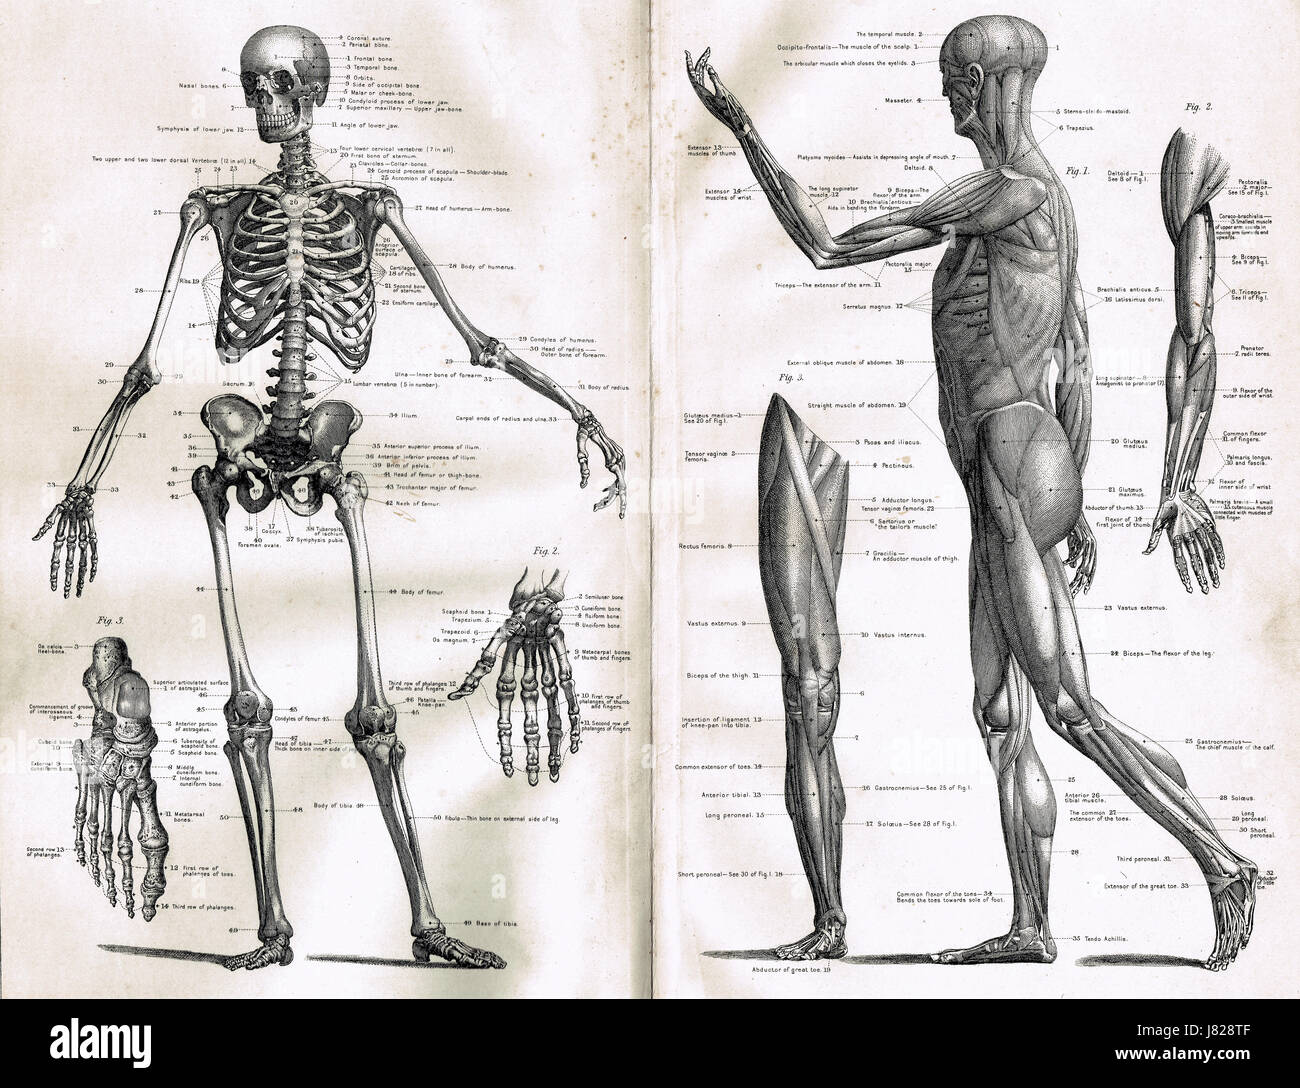 Anatomy Skeletal System Stockfotos & Anatomy Skeletal System Bilder ...